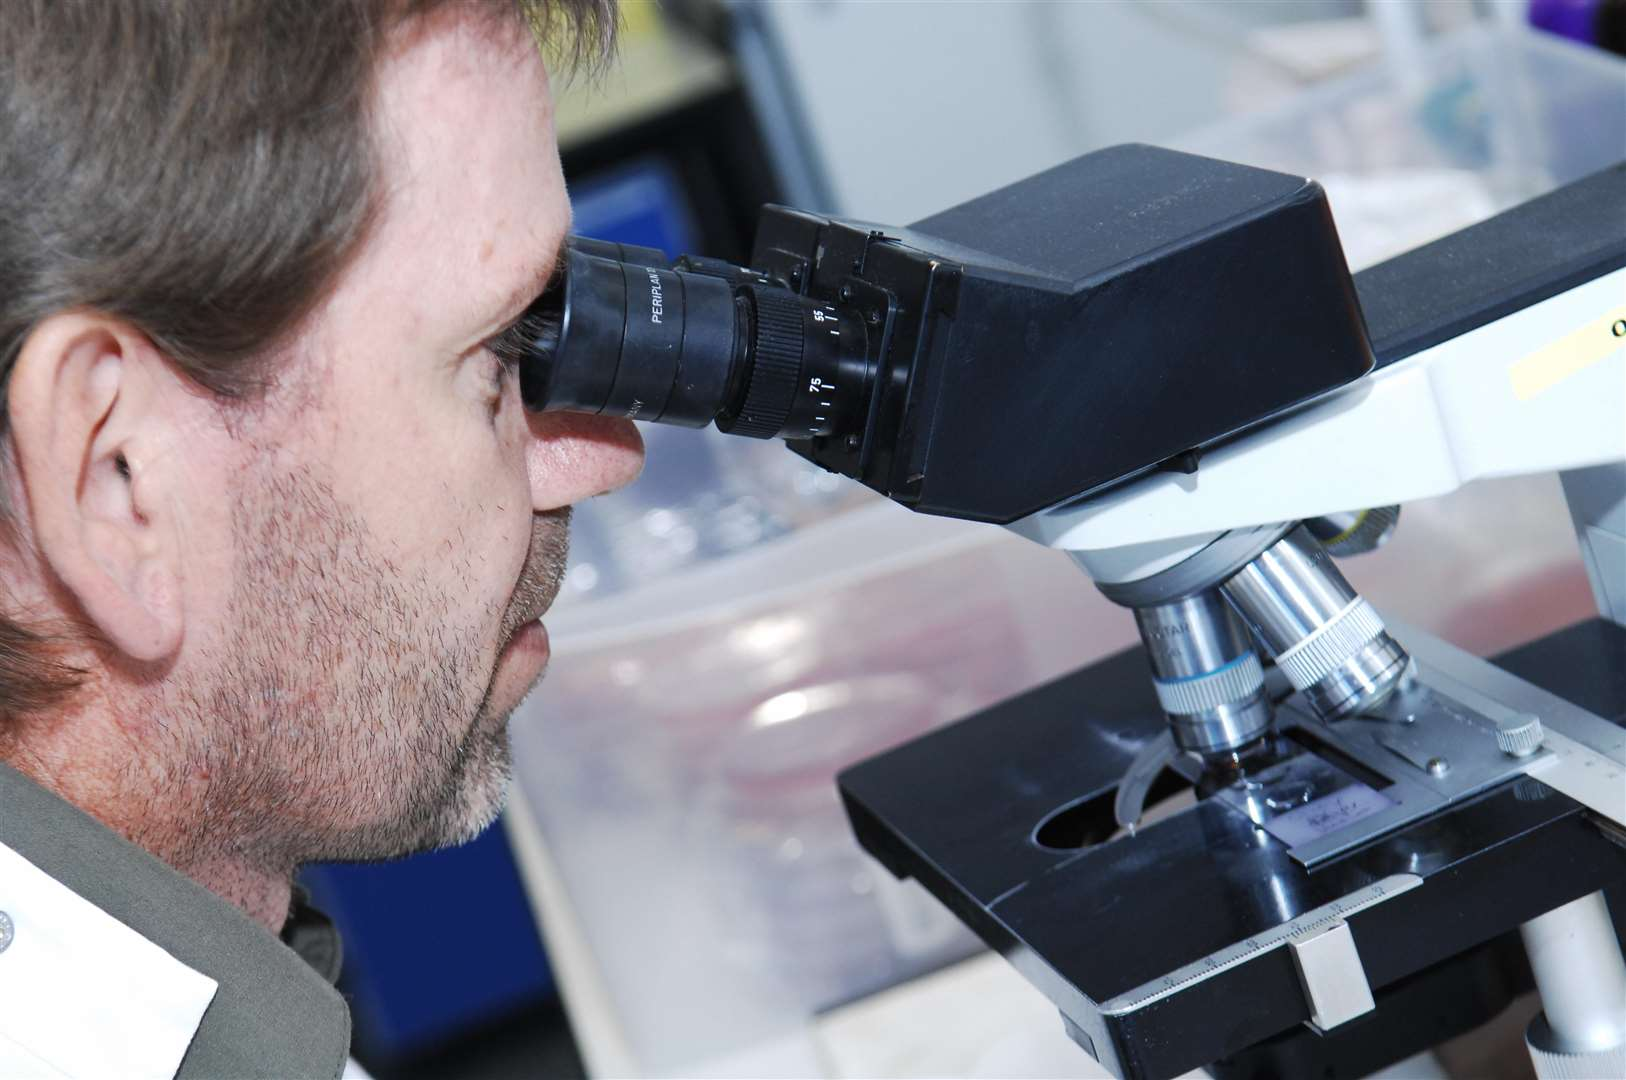 Pathology services could face a shake-up. Picture: Nick Johnson